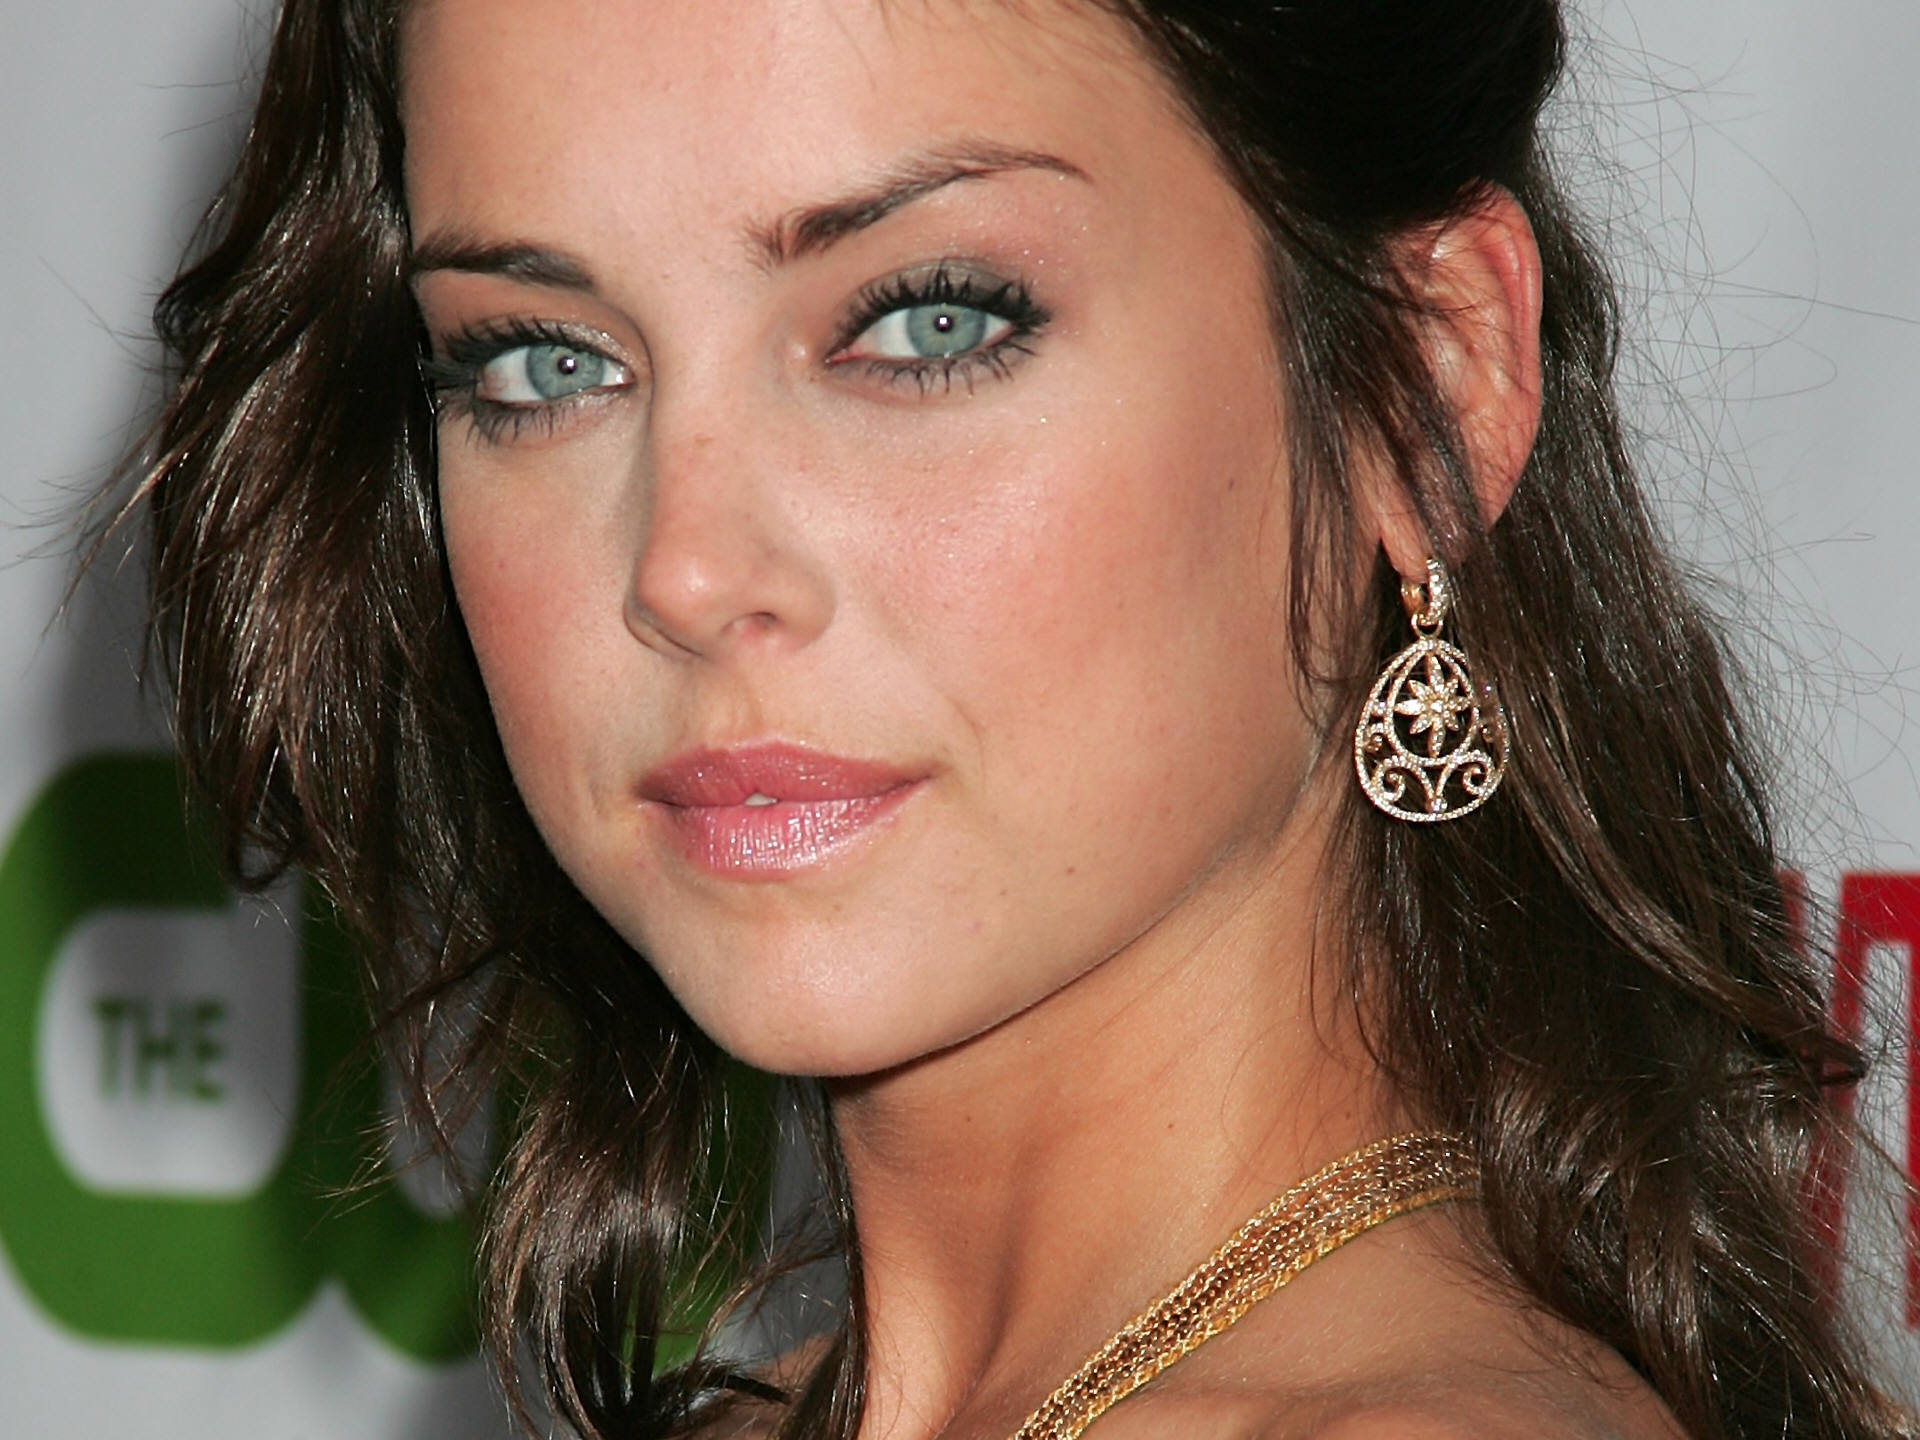 1920x1440 - Jessica Stroup Wallpapers 21